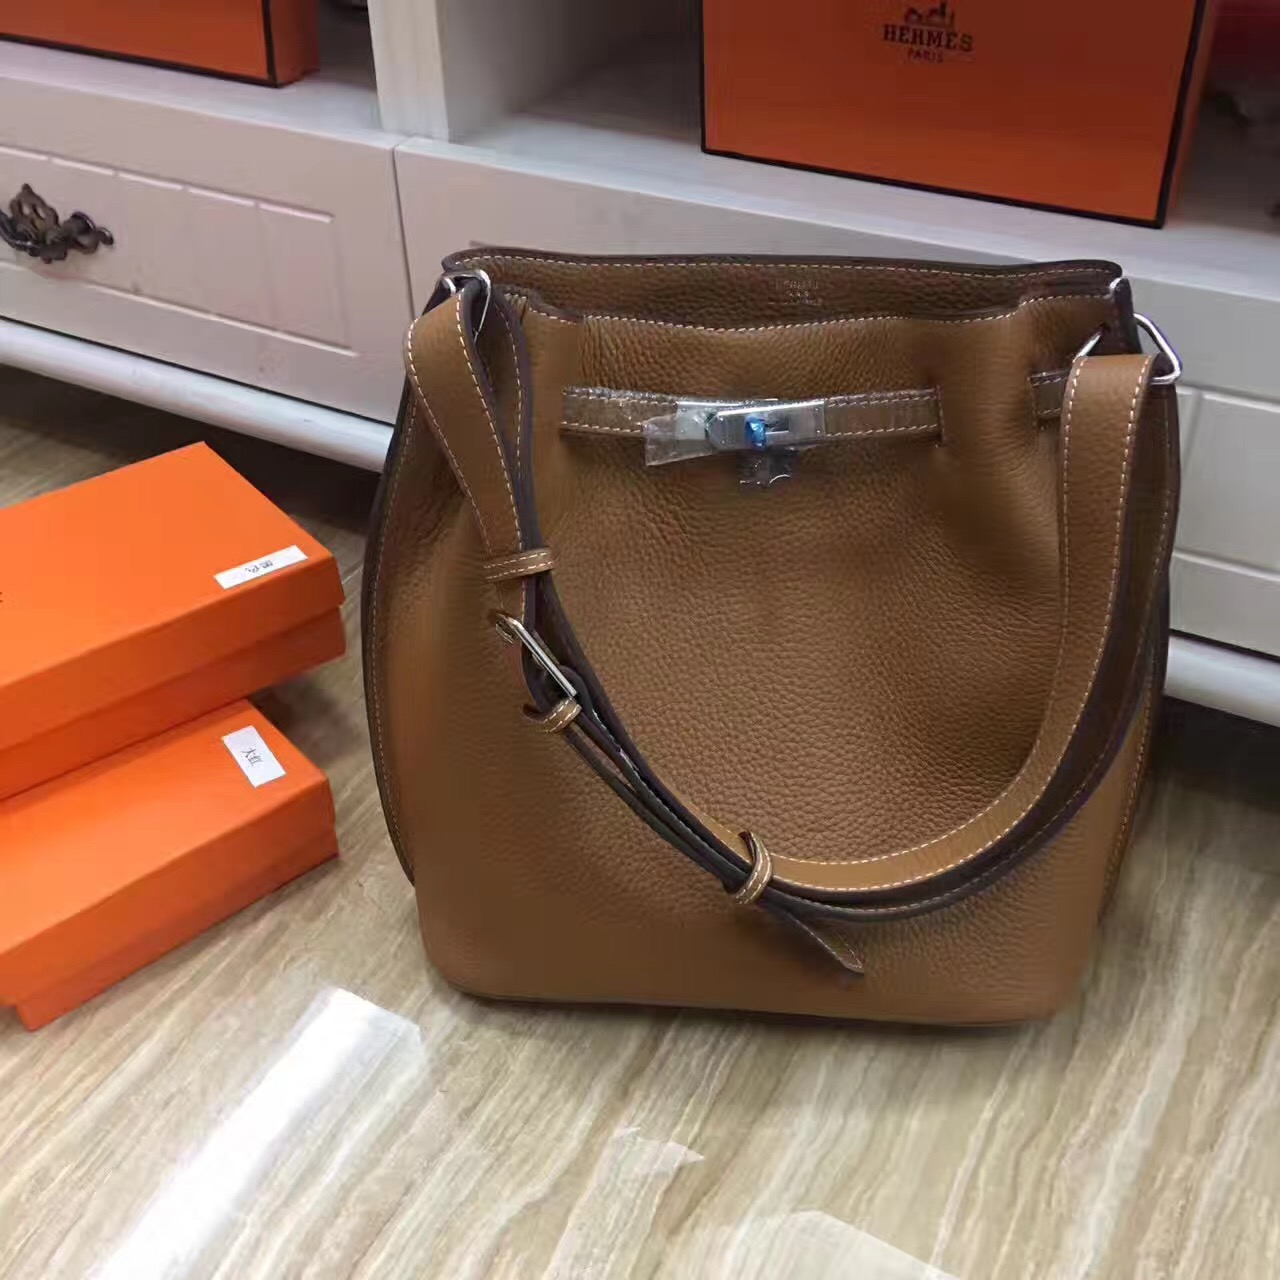 Hermes So Kelly 28cm Togo Leather Shoulder Bag Camel Silver